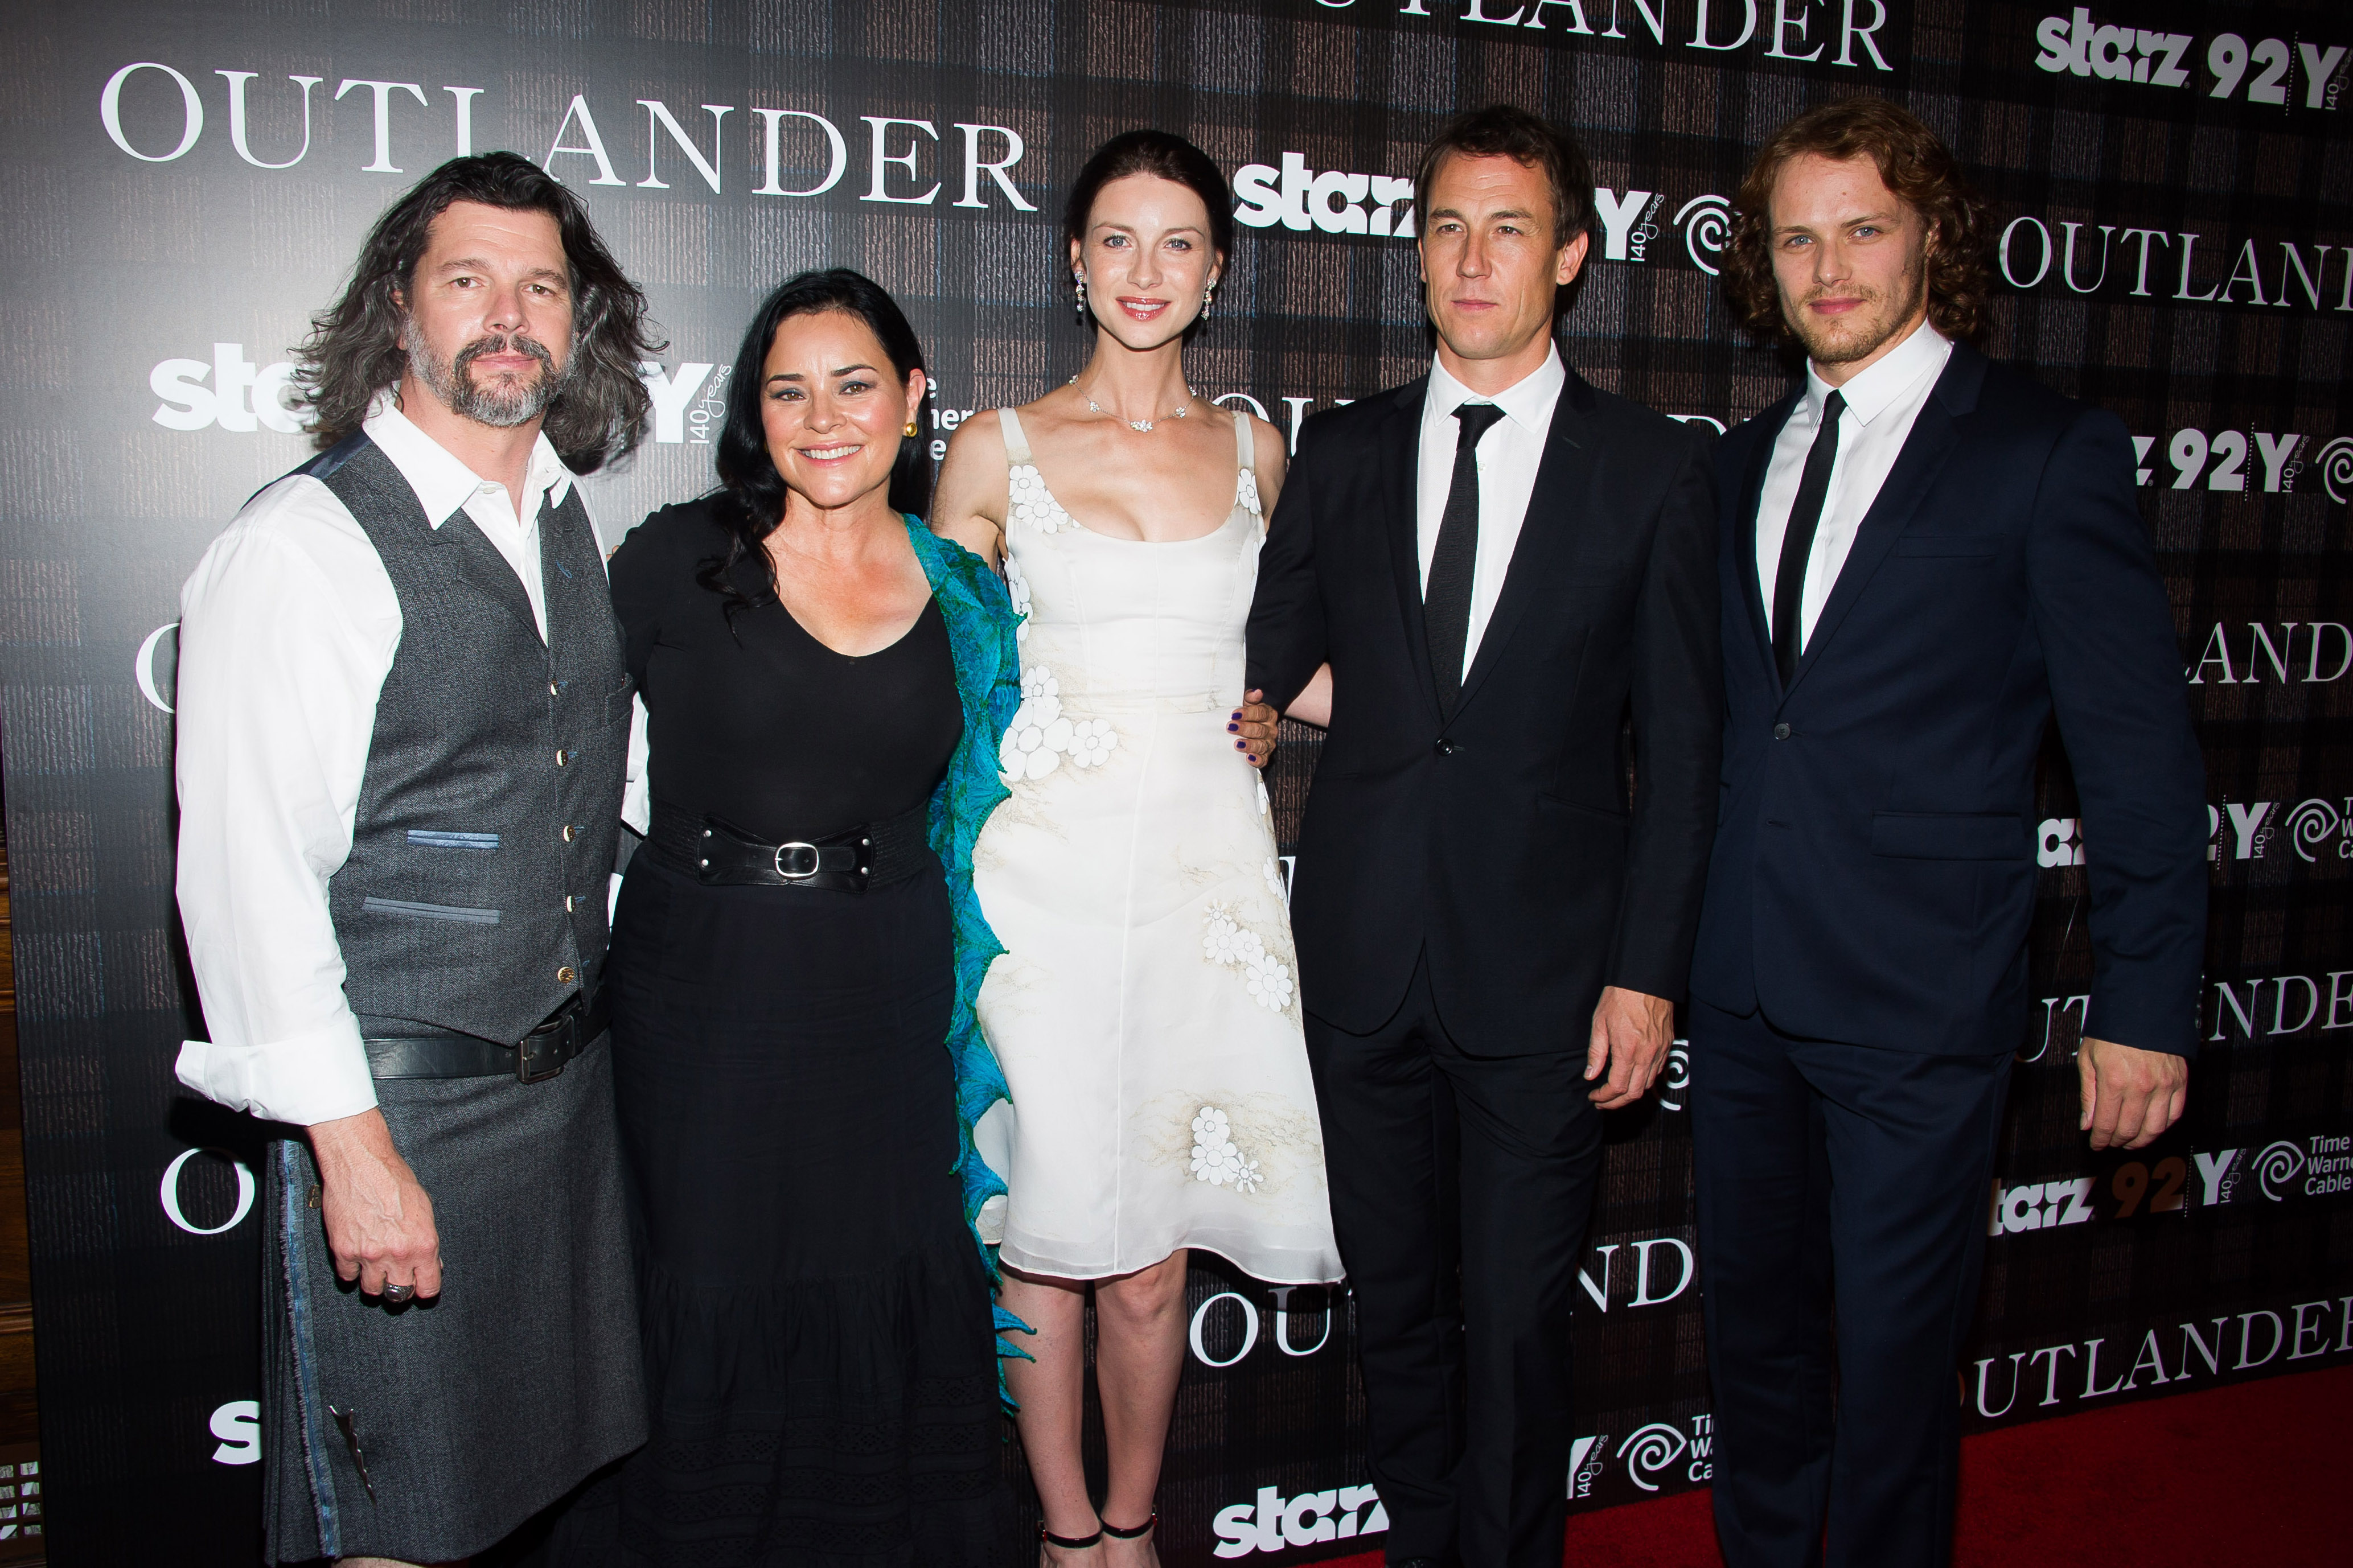 Are jamie and claire outlander actors dating 7